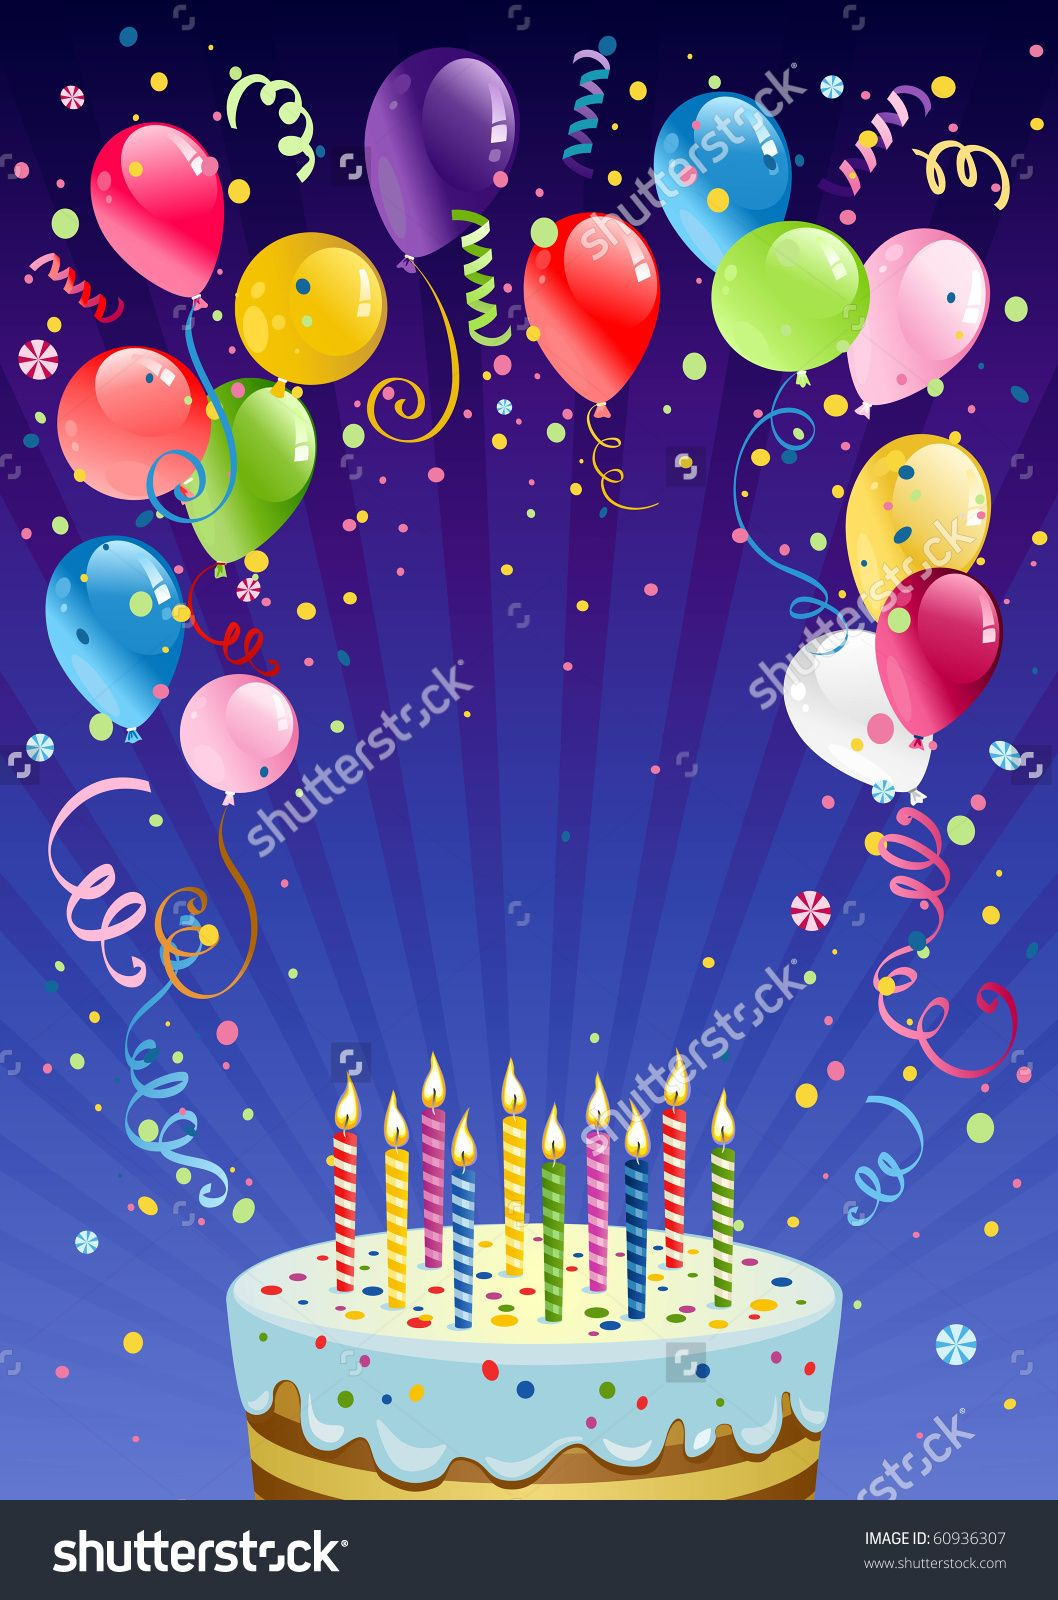 Birthday Backgrounds Vector Free Vector Download Free Birthday